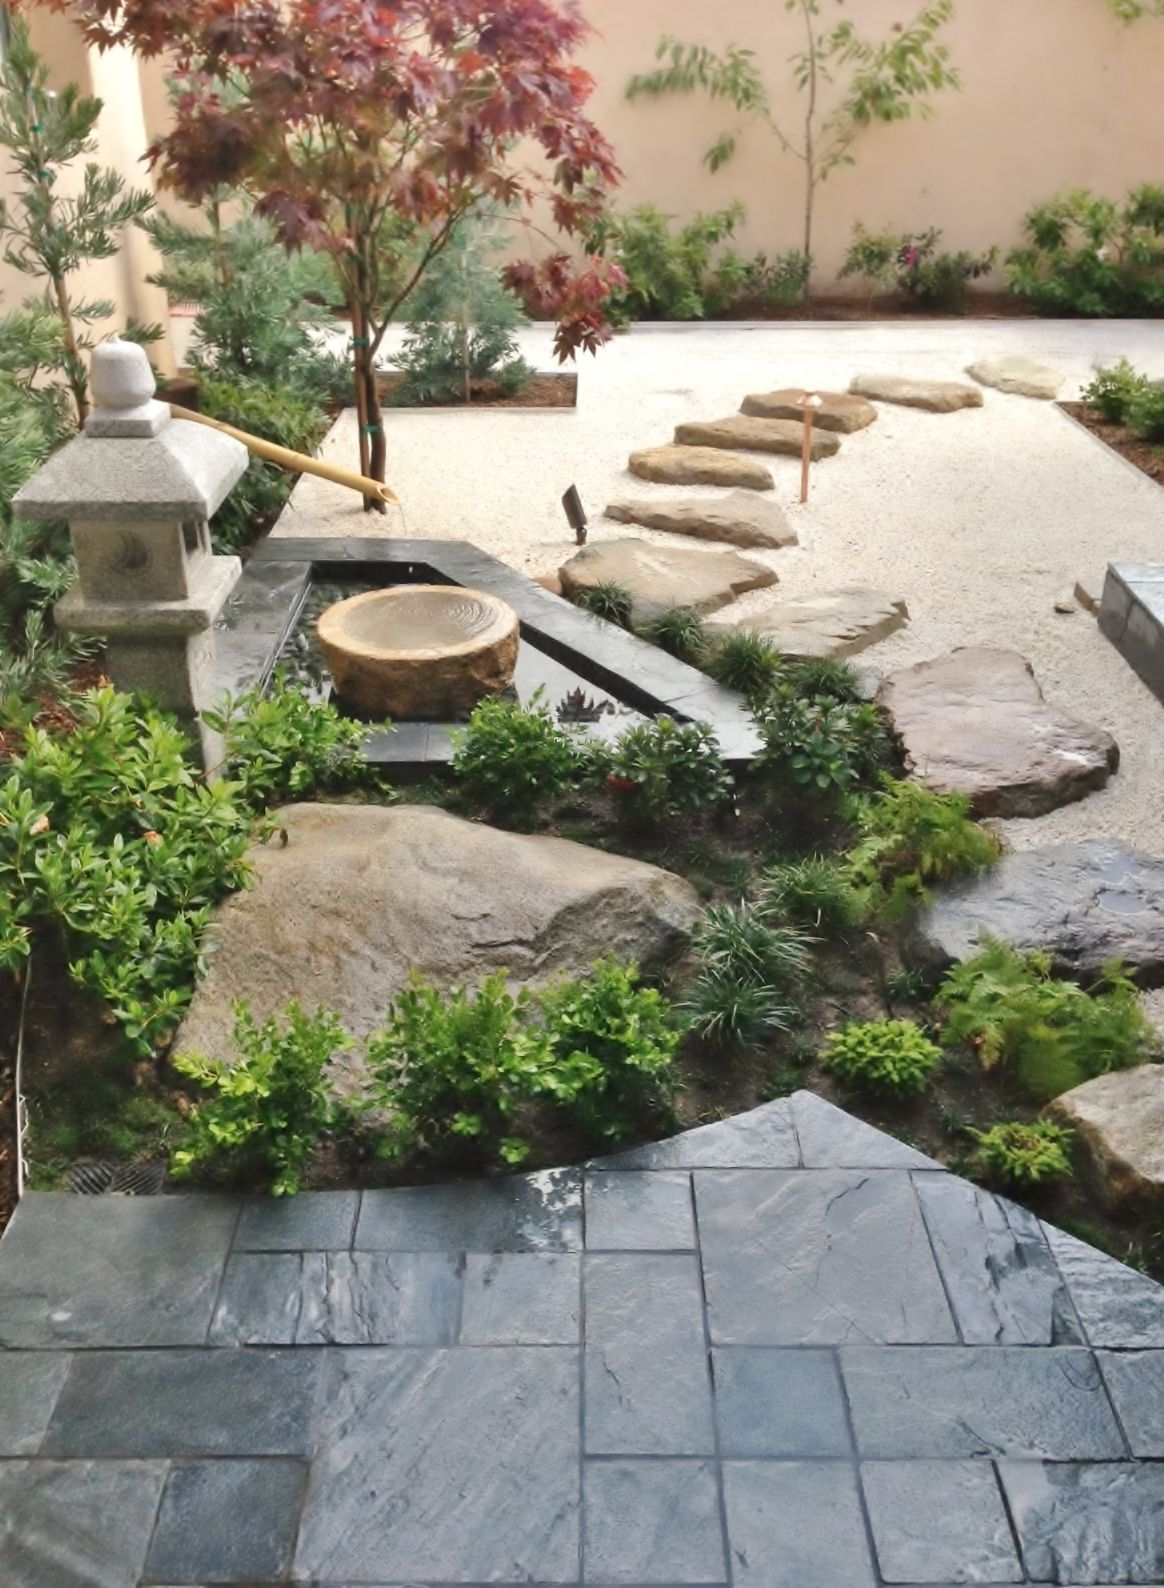 Pin by Modern Zen Garden on Landscaping | Japanese garden ...